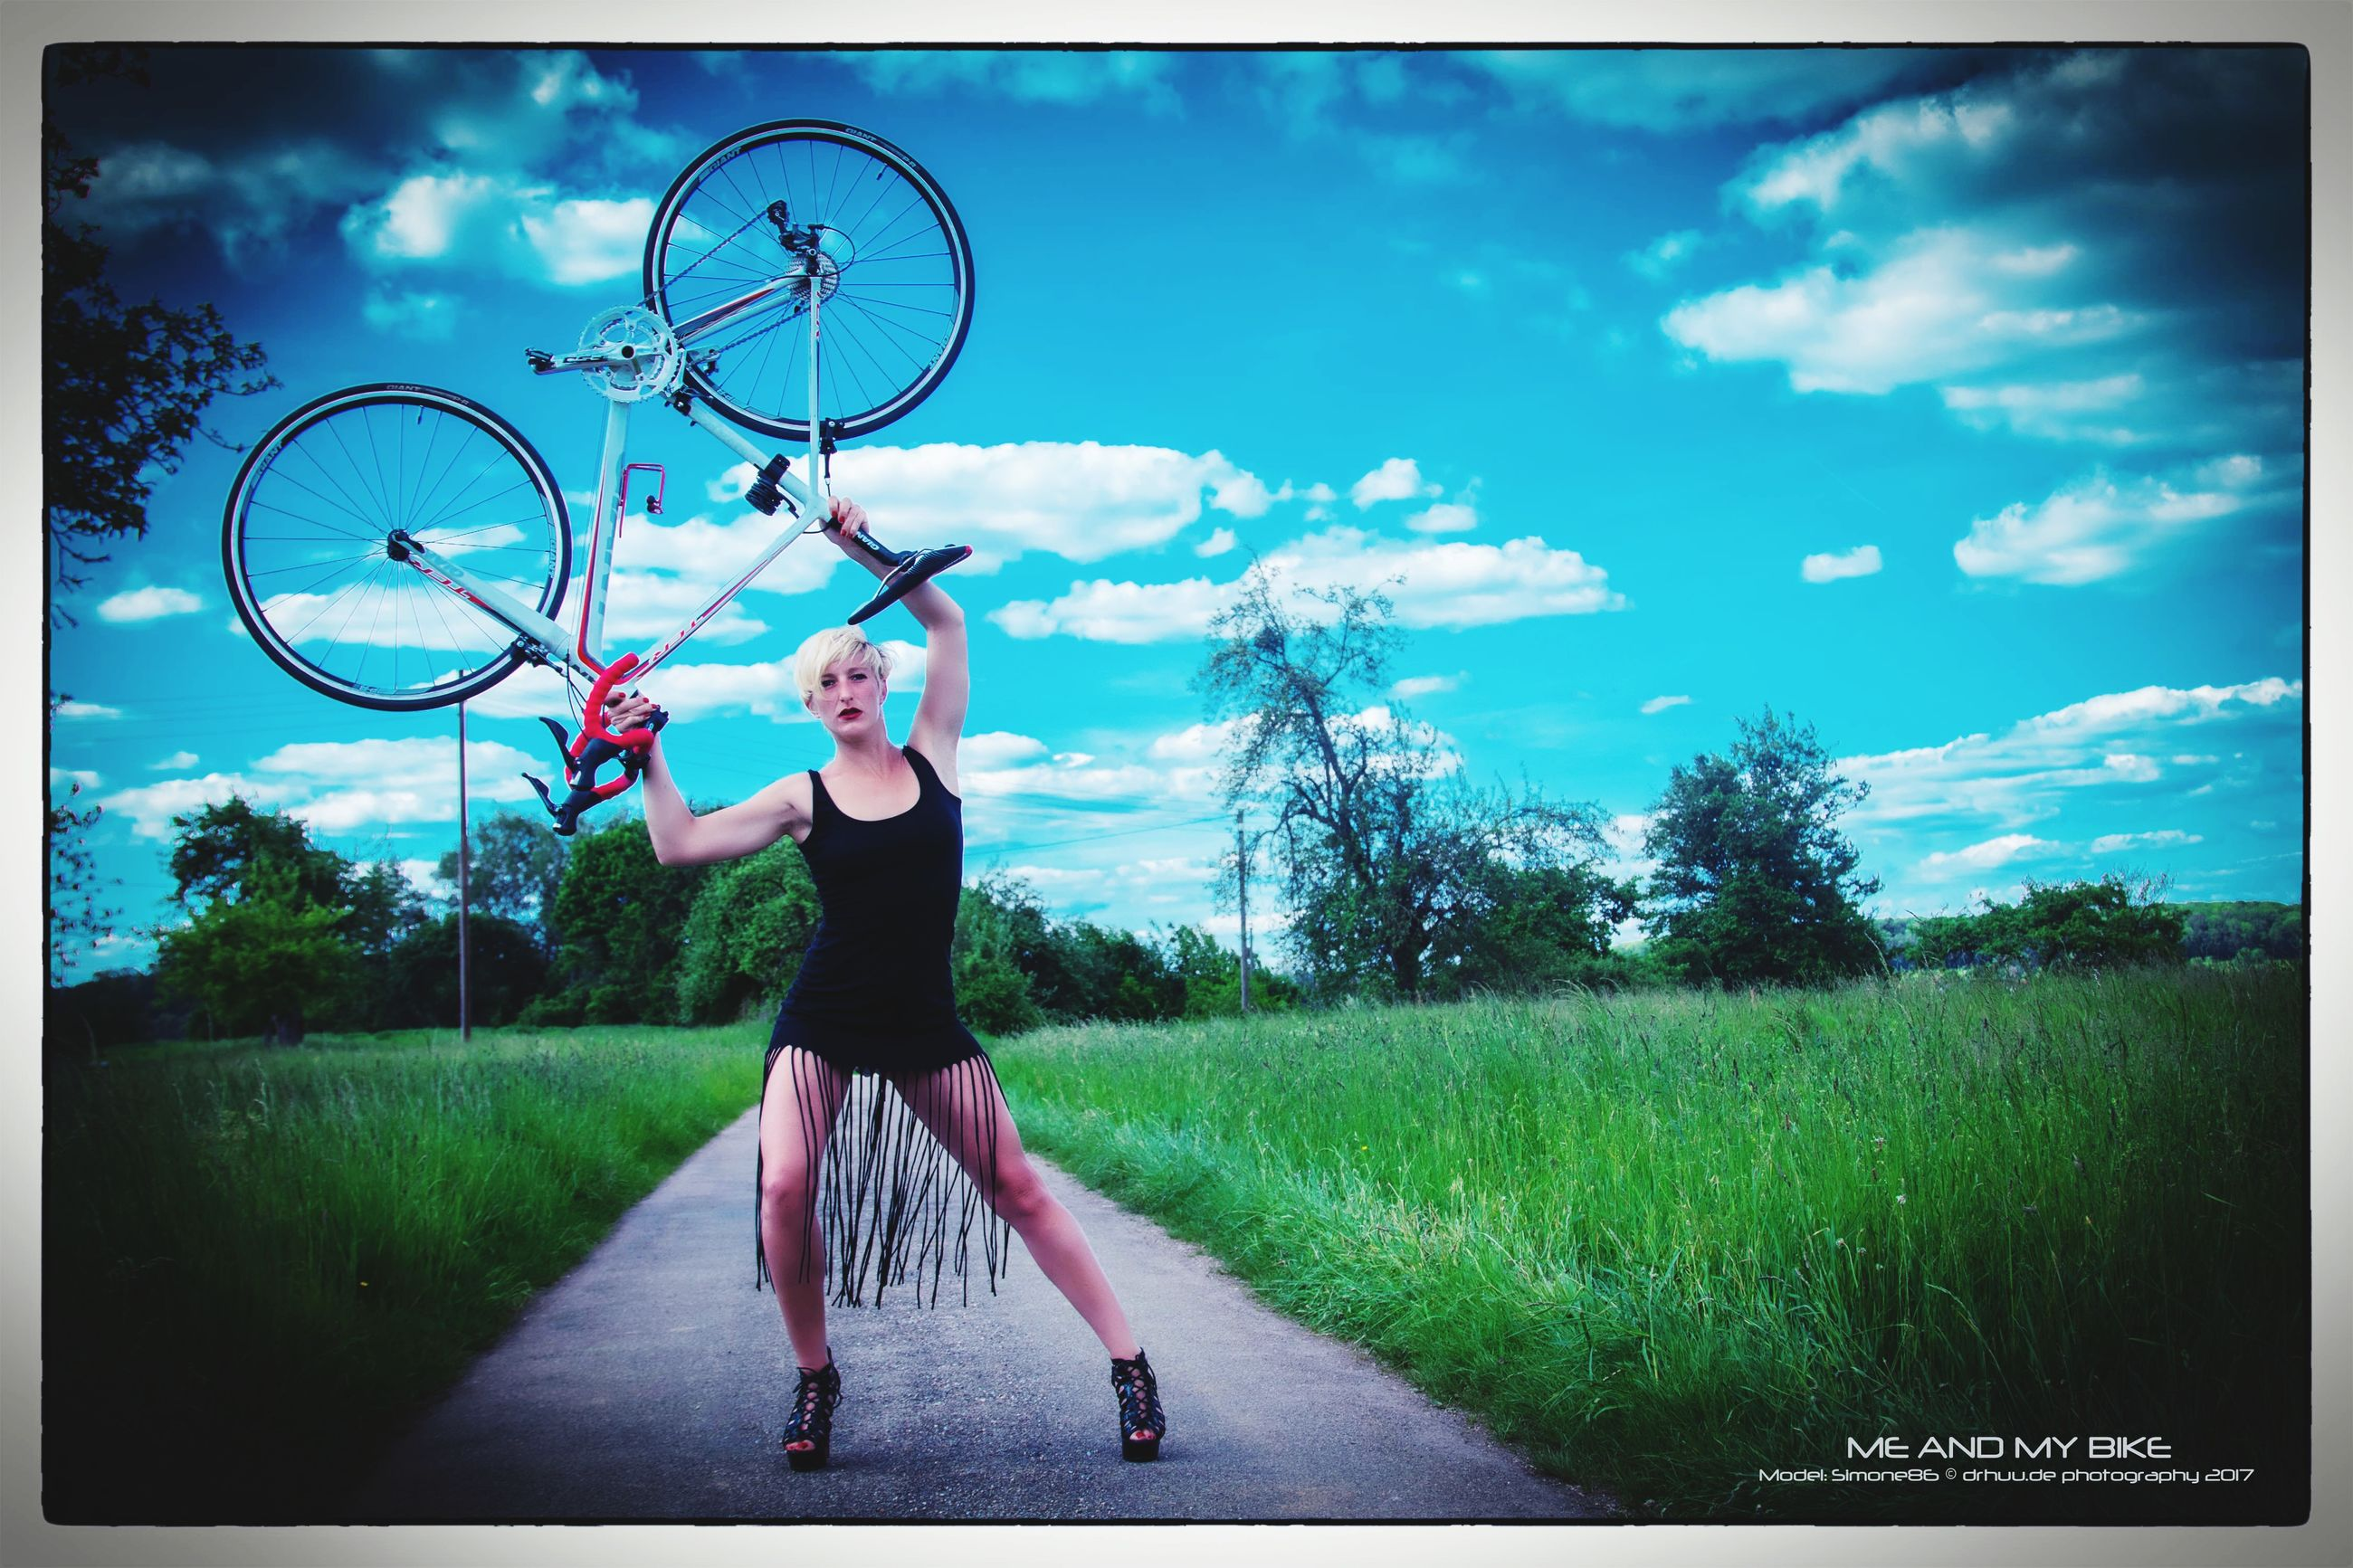 WOMAN WITH BICYCLE ON GRASS